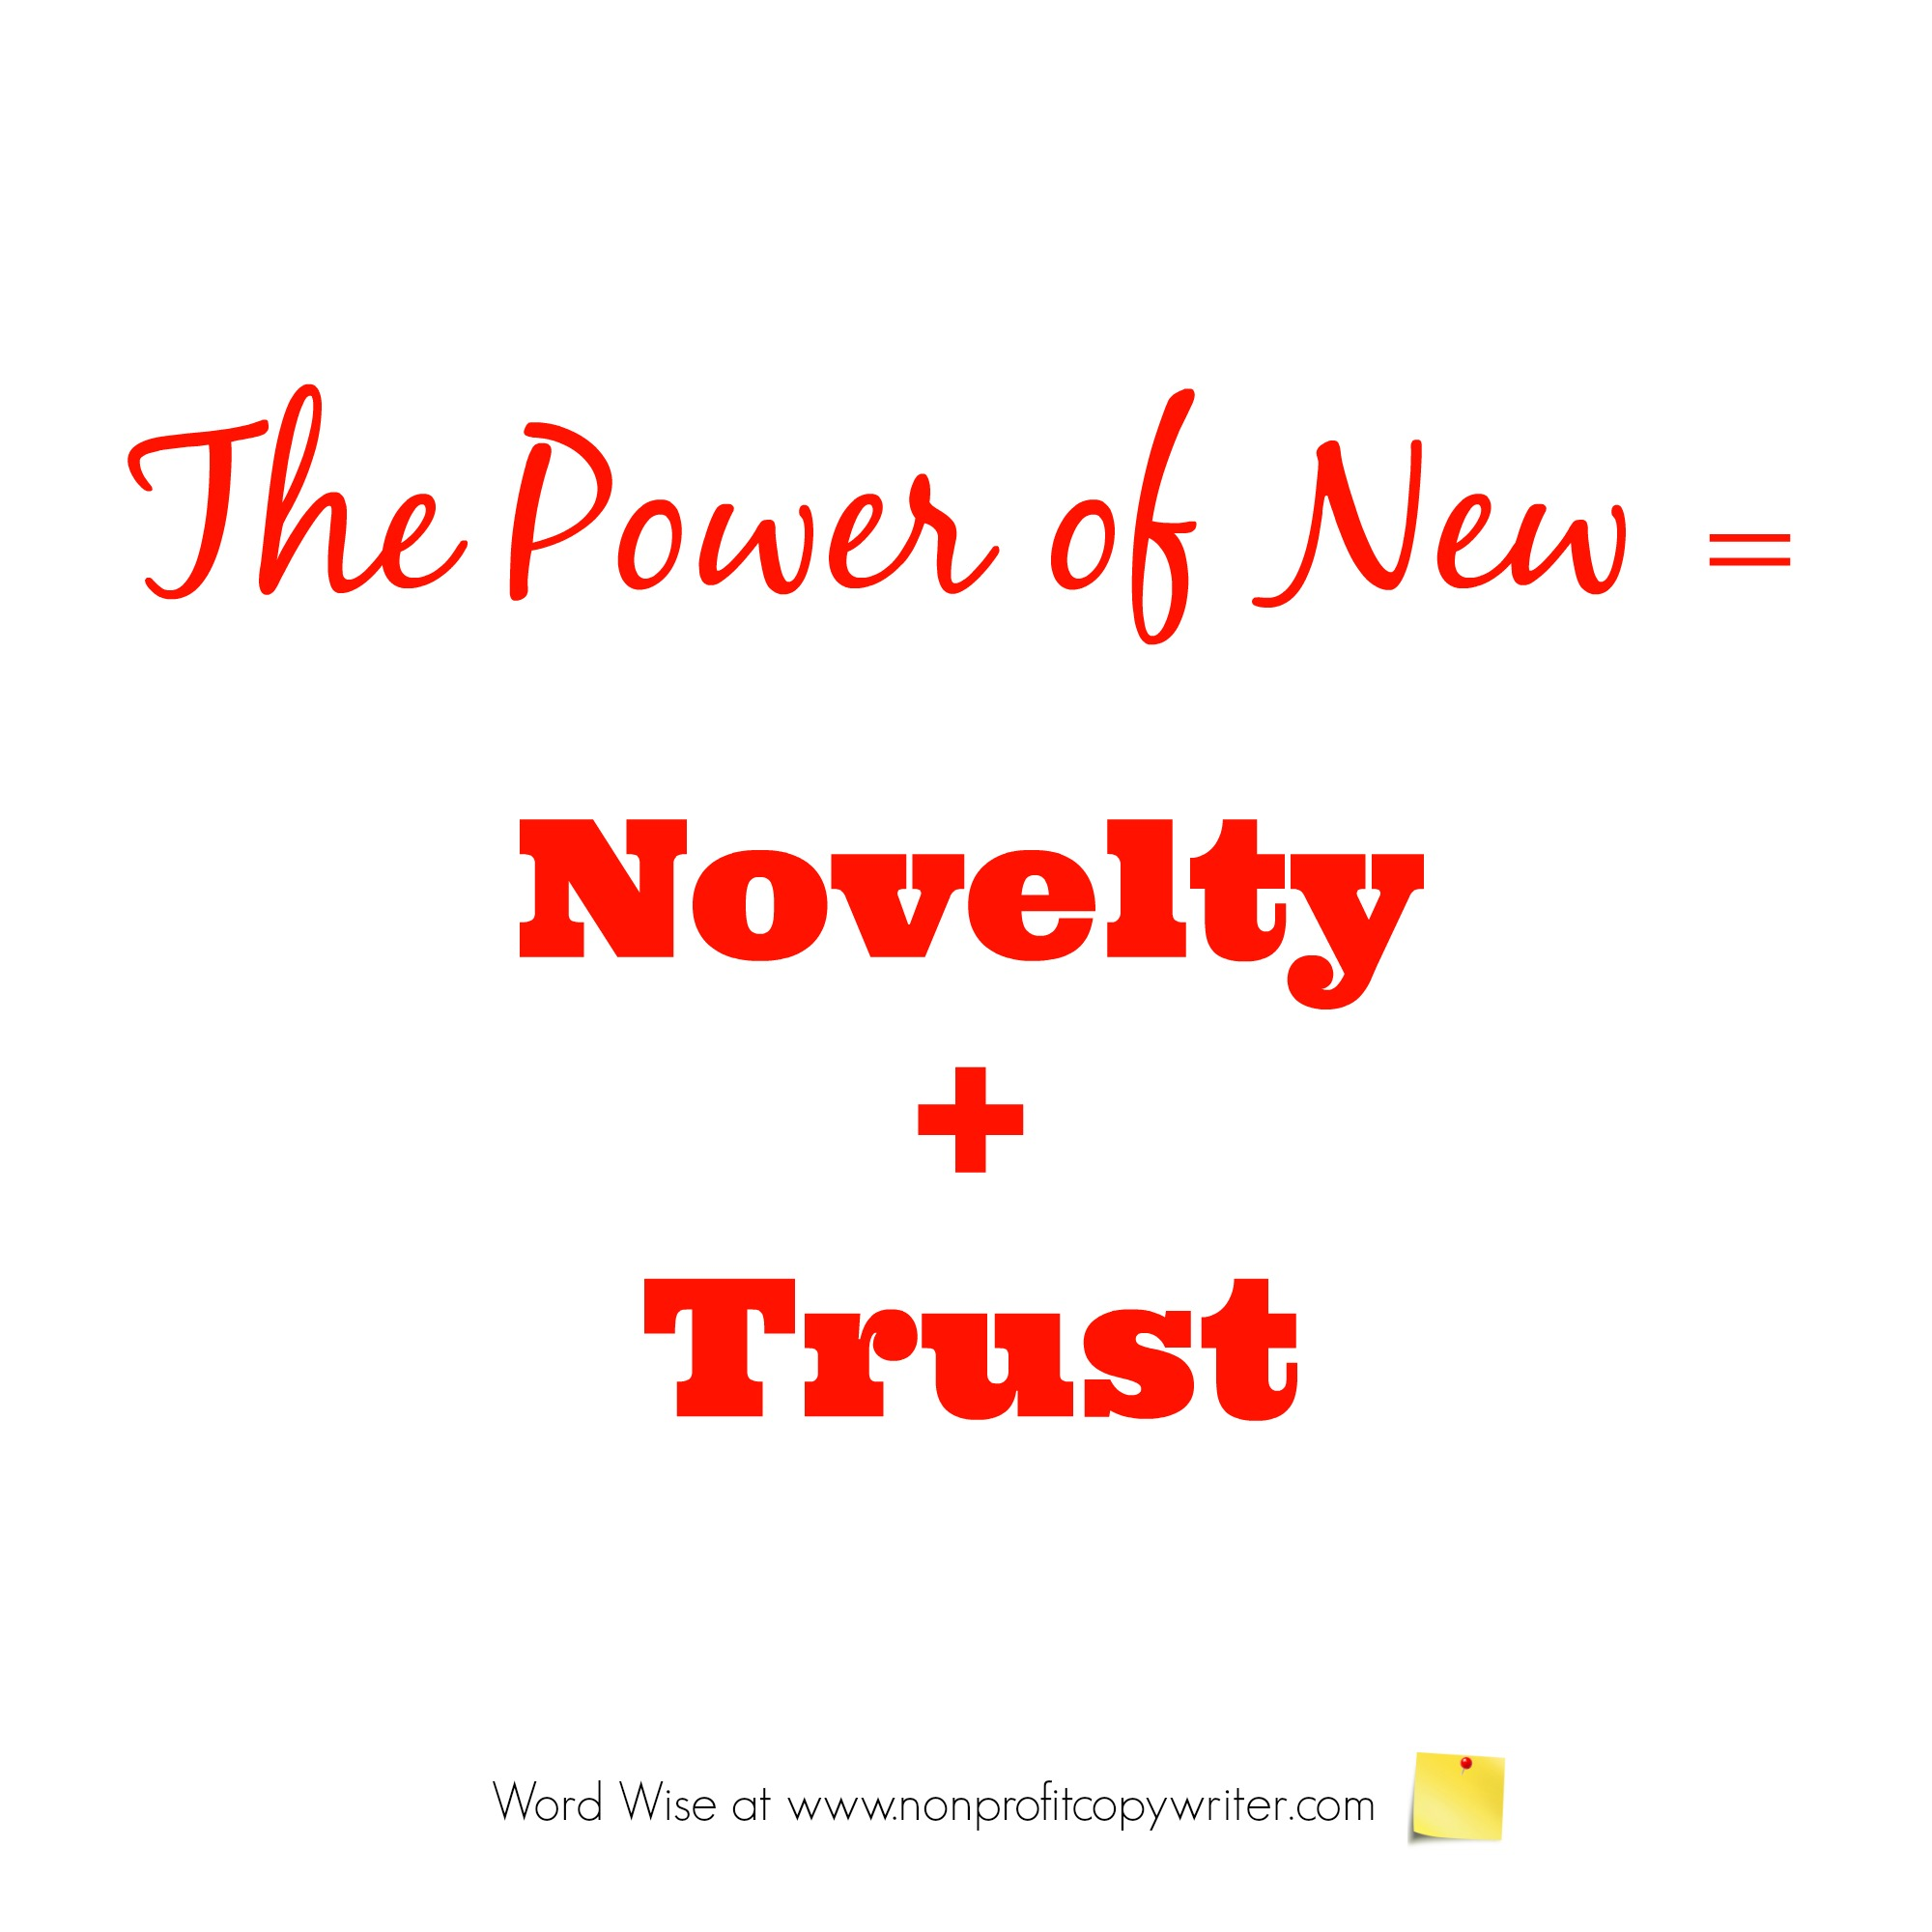 The Power of New in persuasive writing with Word Wise at Nonprofit Copywriter